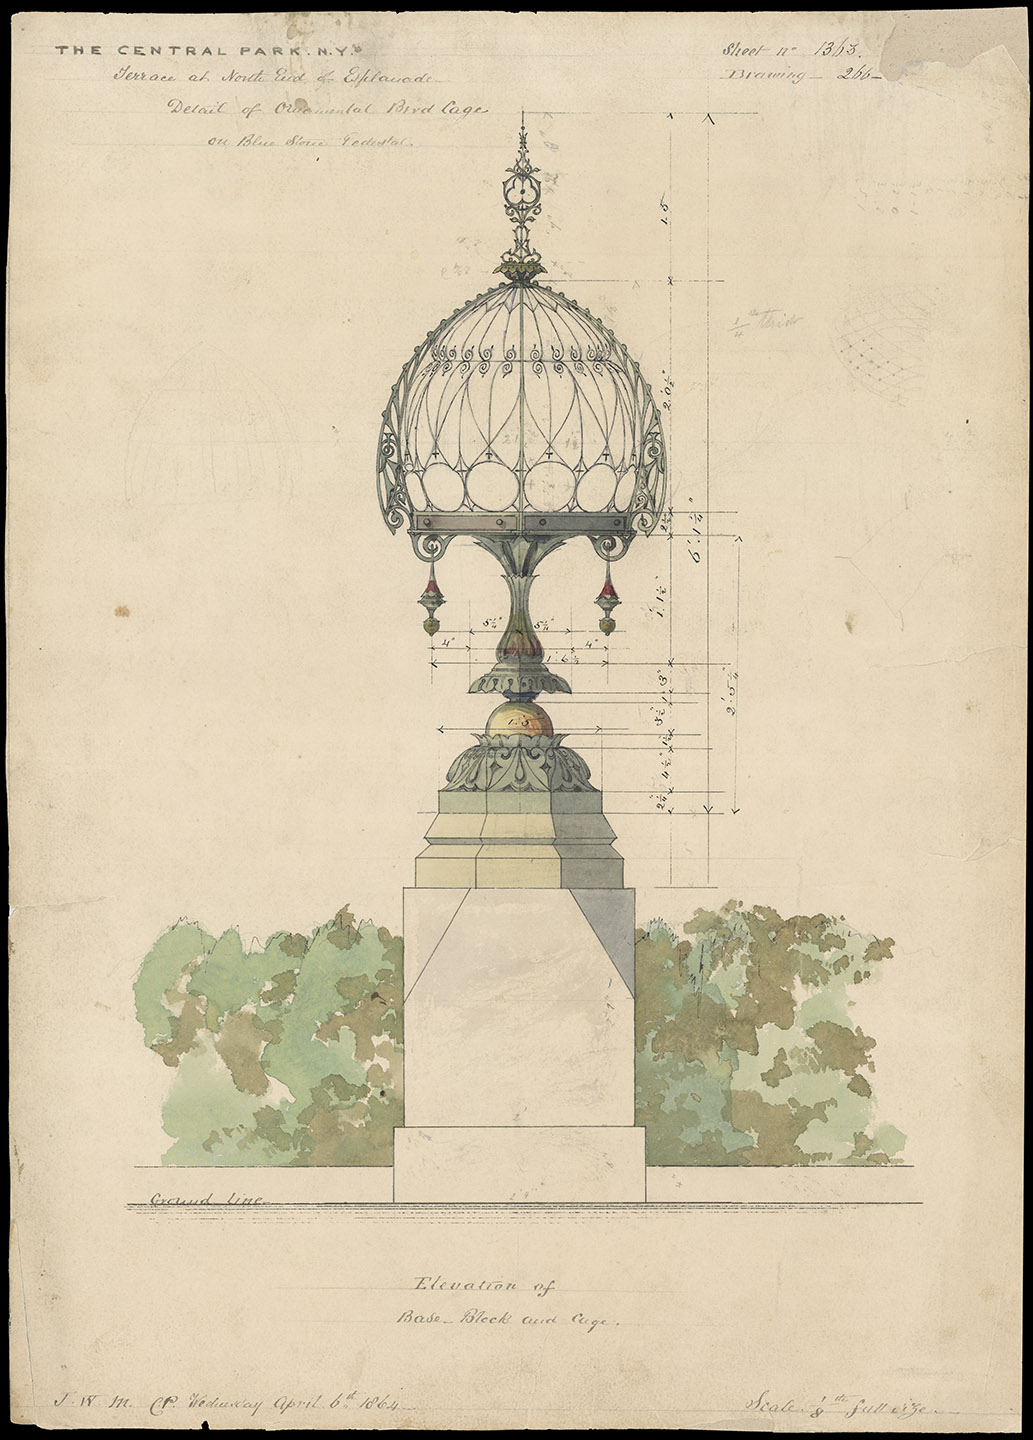 Jacob Wrey Mould, Central Park drawing, 1864. Bethesda Terrace and Mall, Detail of Ornamental Bird Cage on Blue Stone Pedestal. Department of Parks and Recreation collection, New York City Municipal Archives.